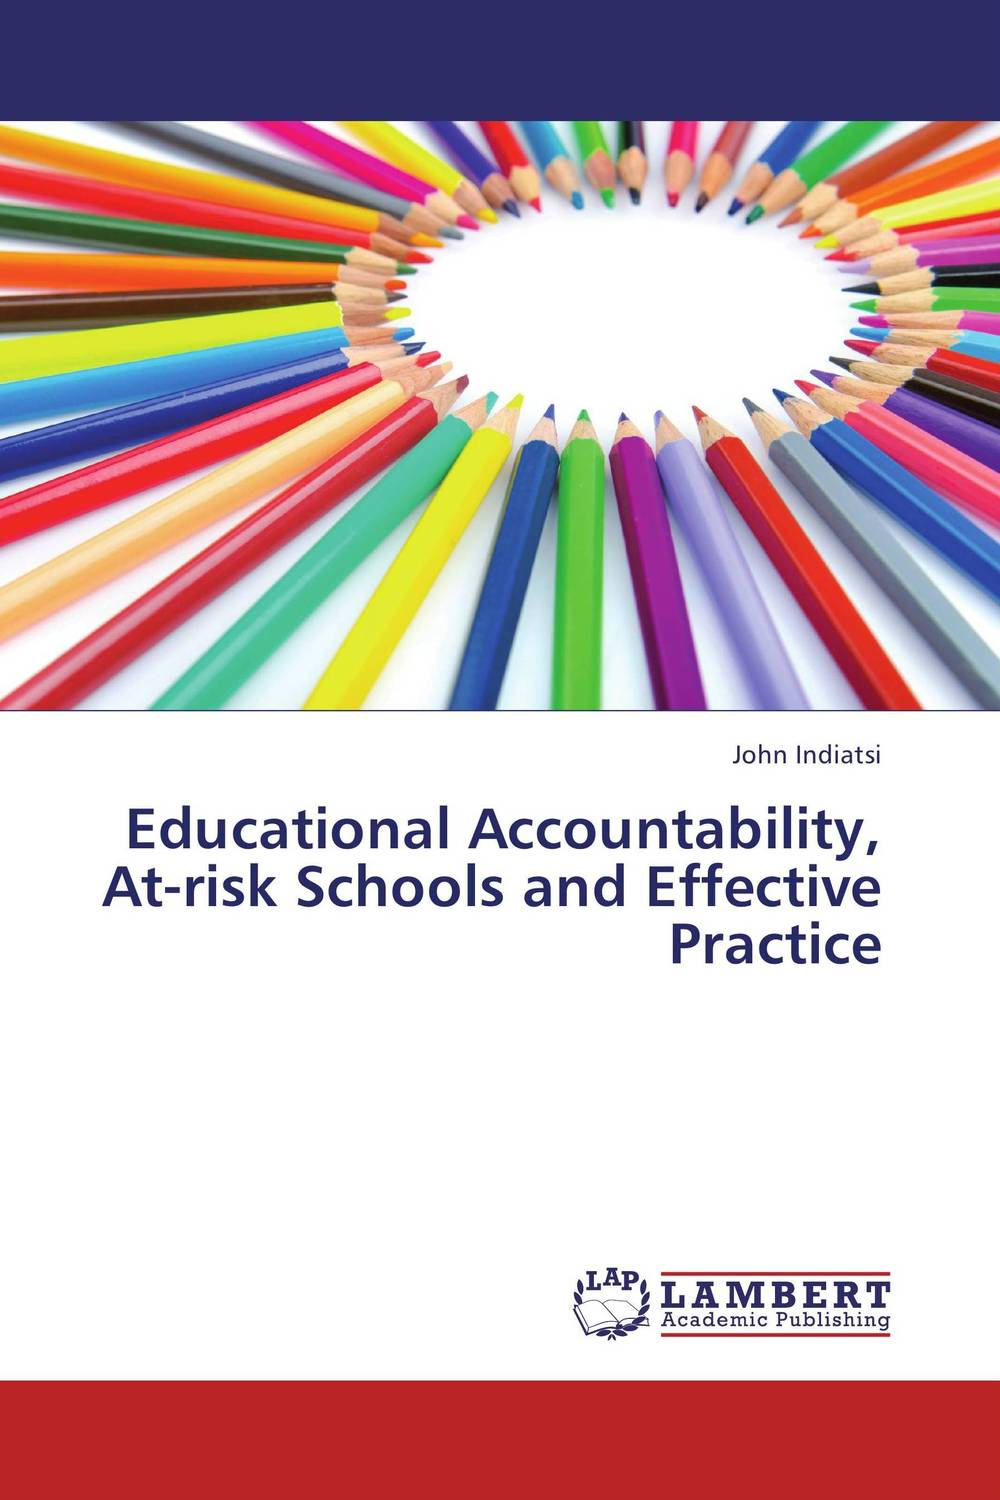 Educational Accountability, At-risk Schools and Effective Practice